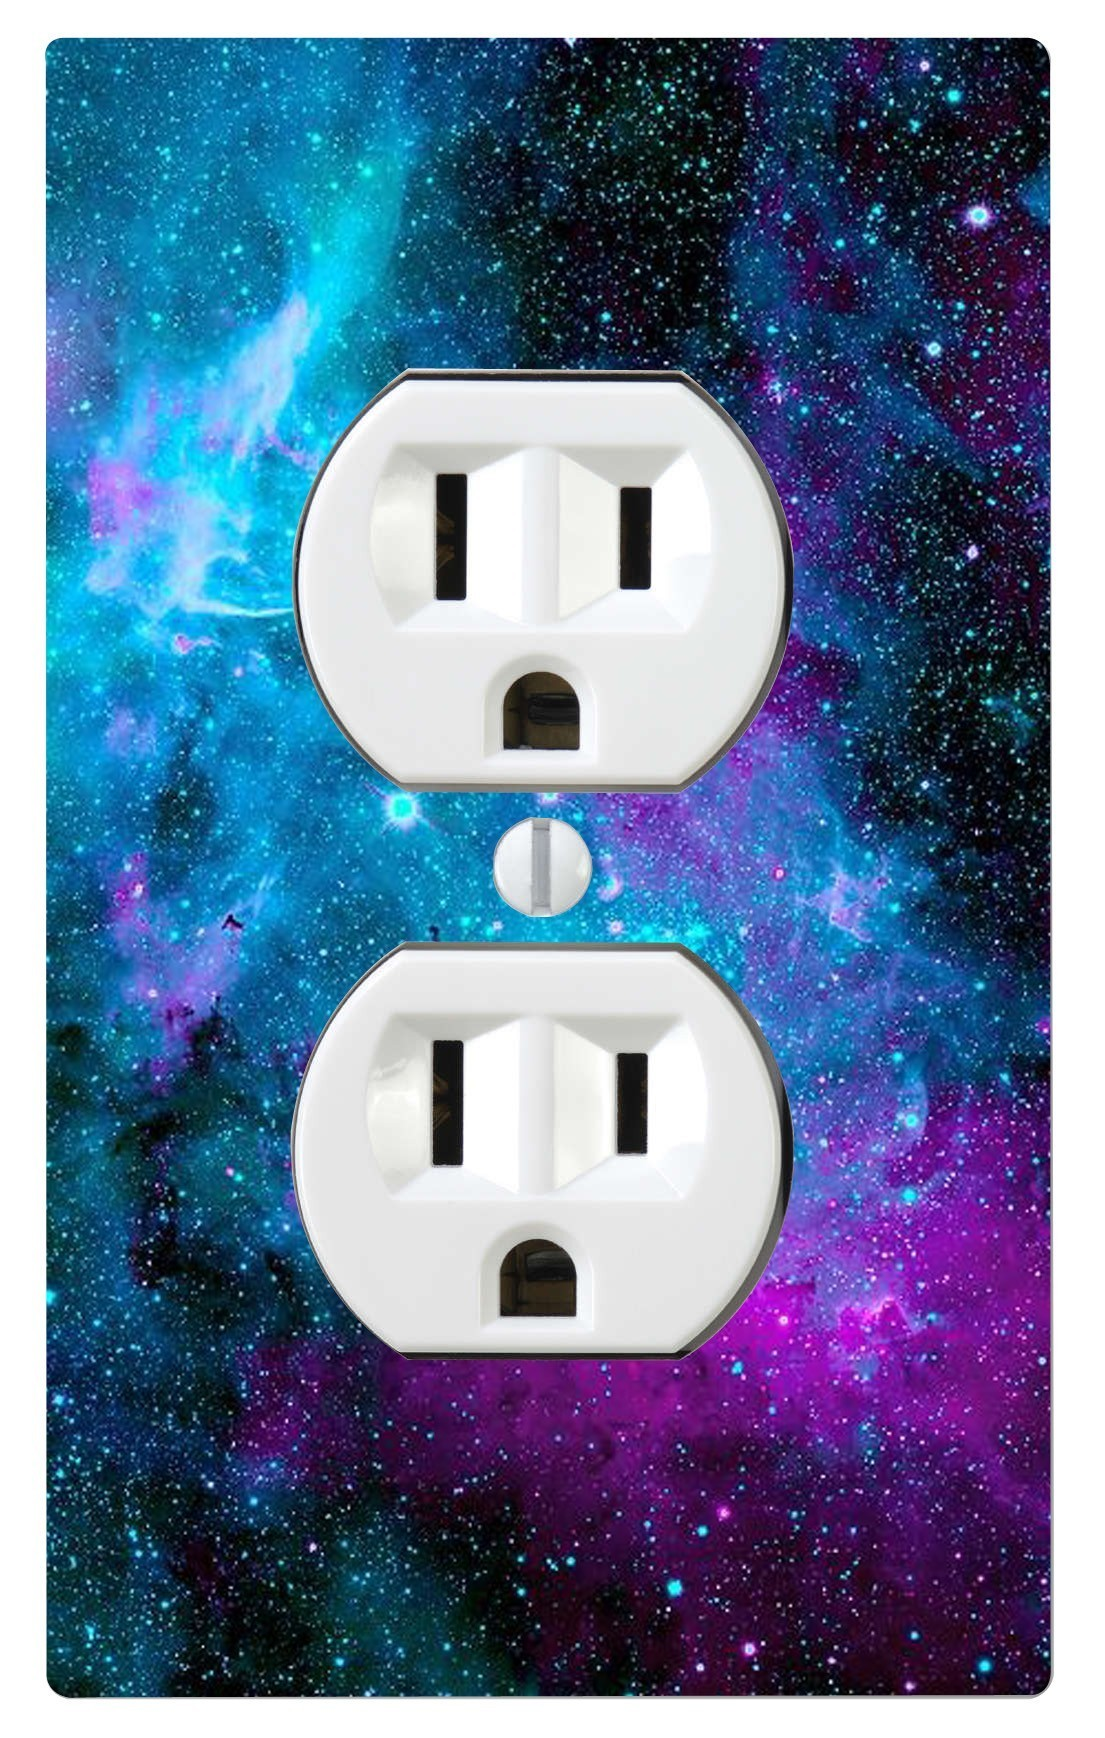 Outlet Cover